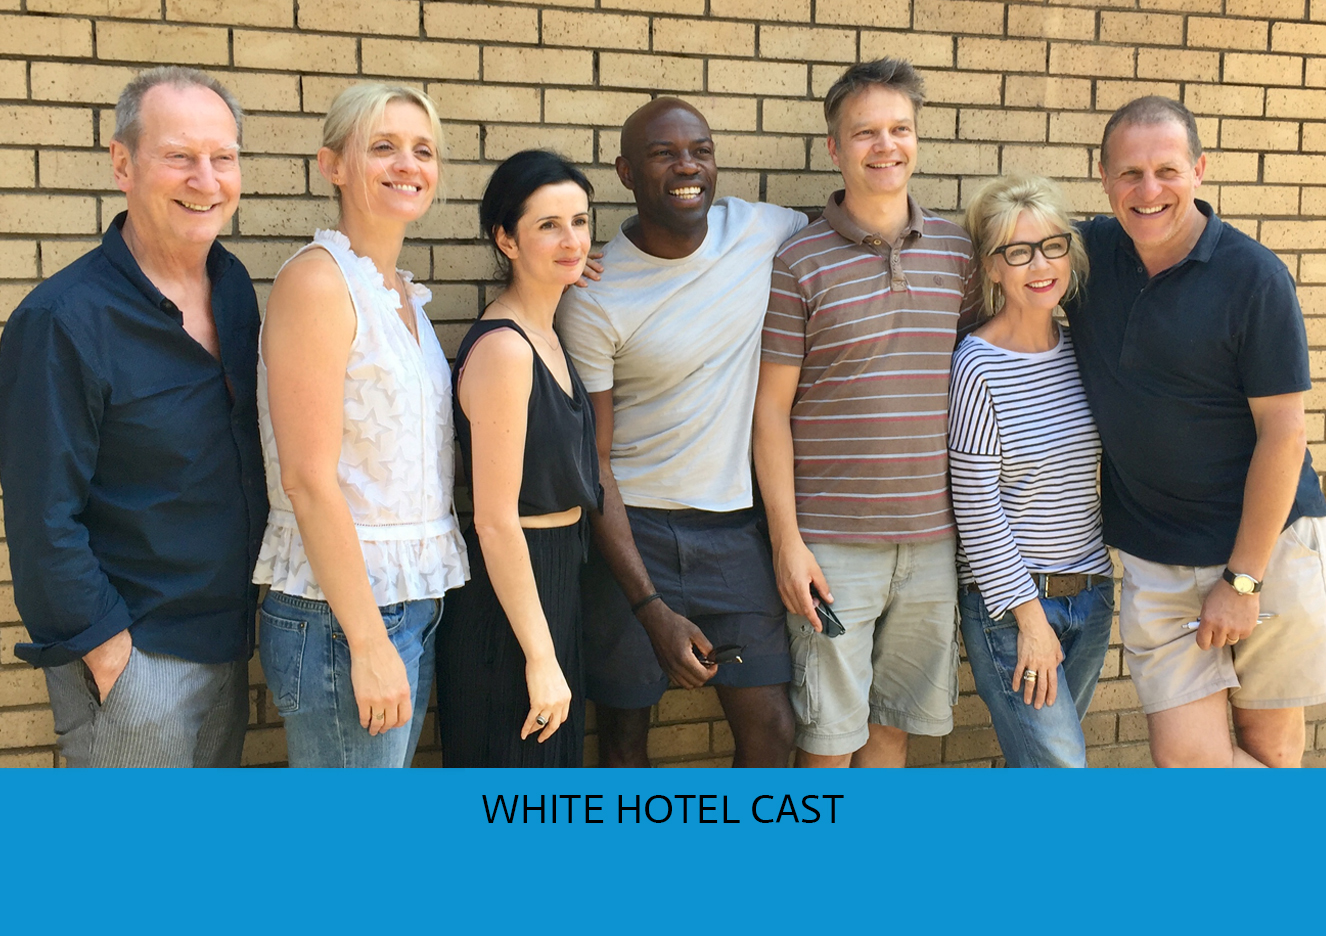 White Hotel - cast with title